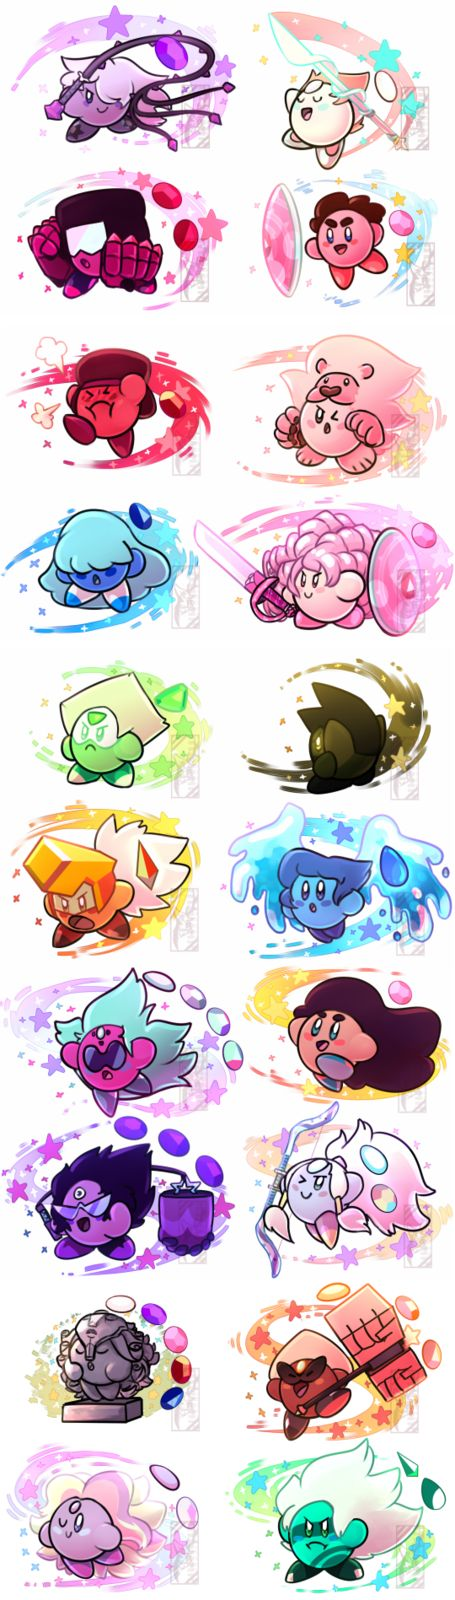 Steven Universe: Kirby versions! Peridot is my favourite <3